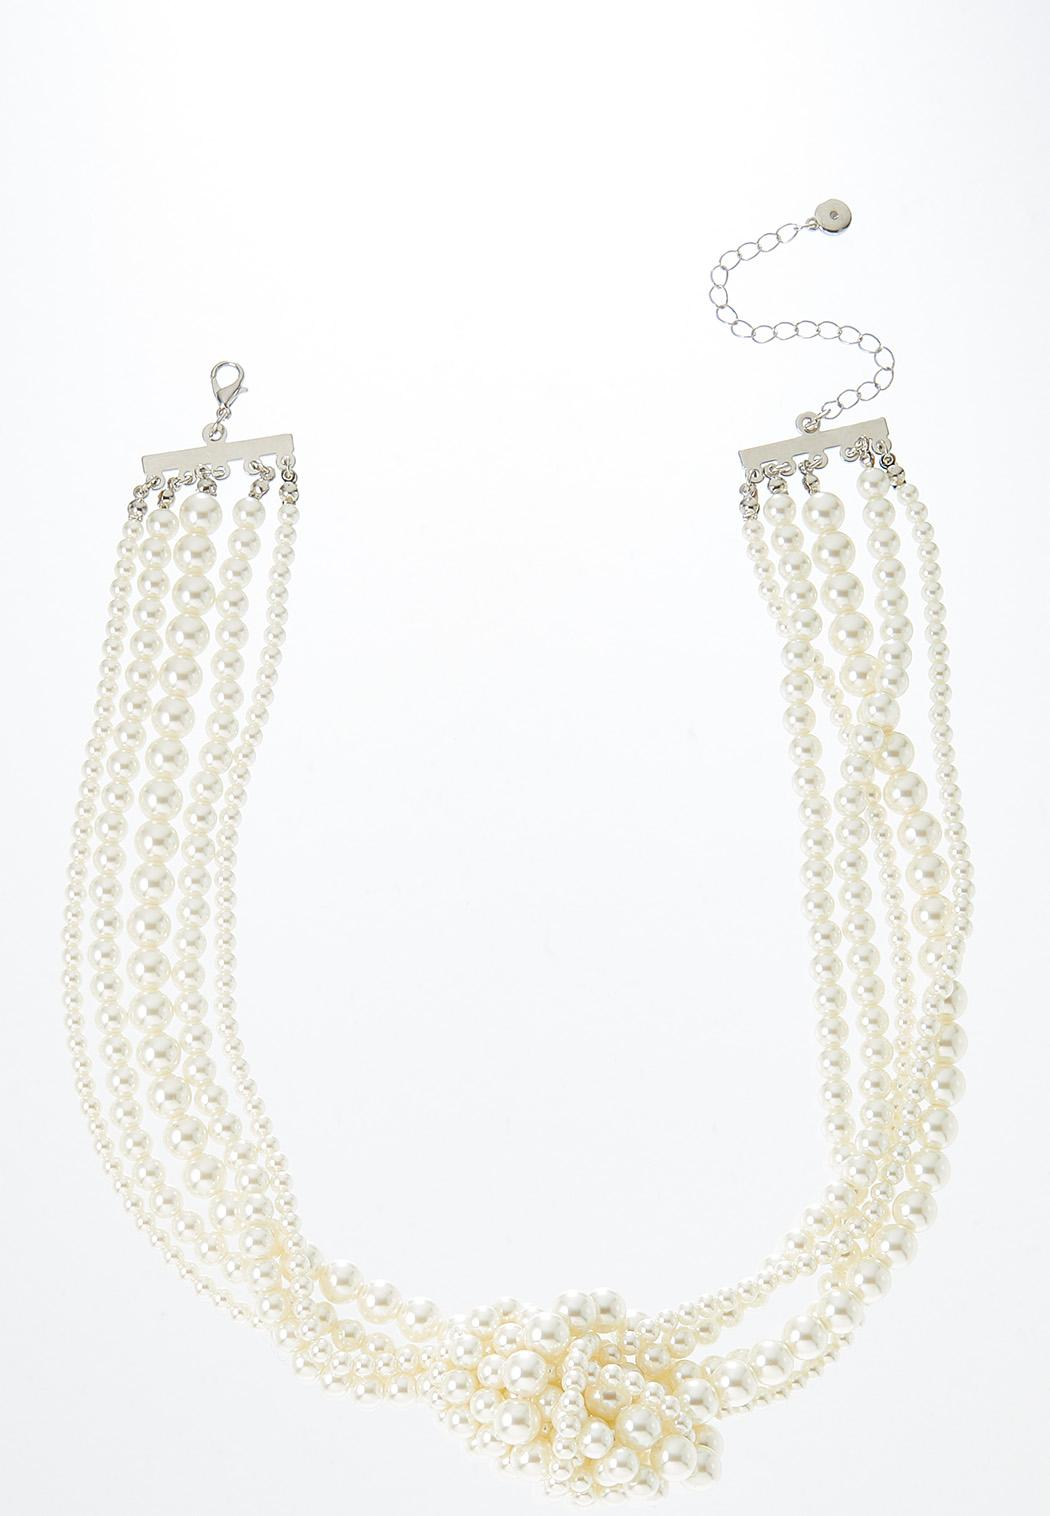 Layered Knotted Pearl Necklace